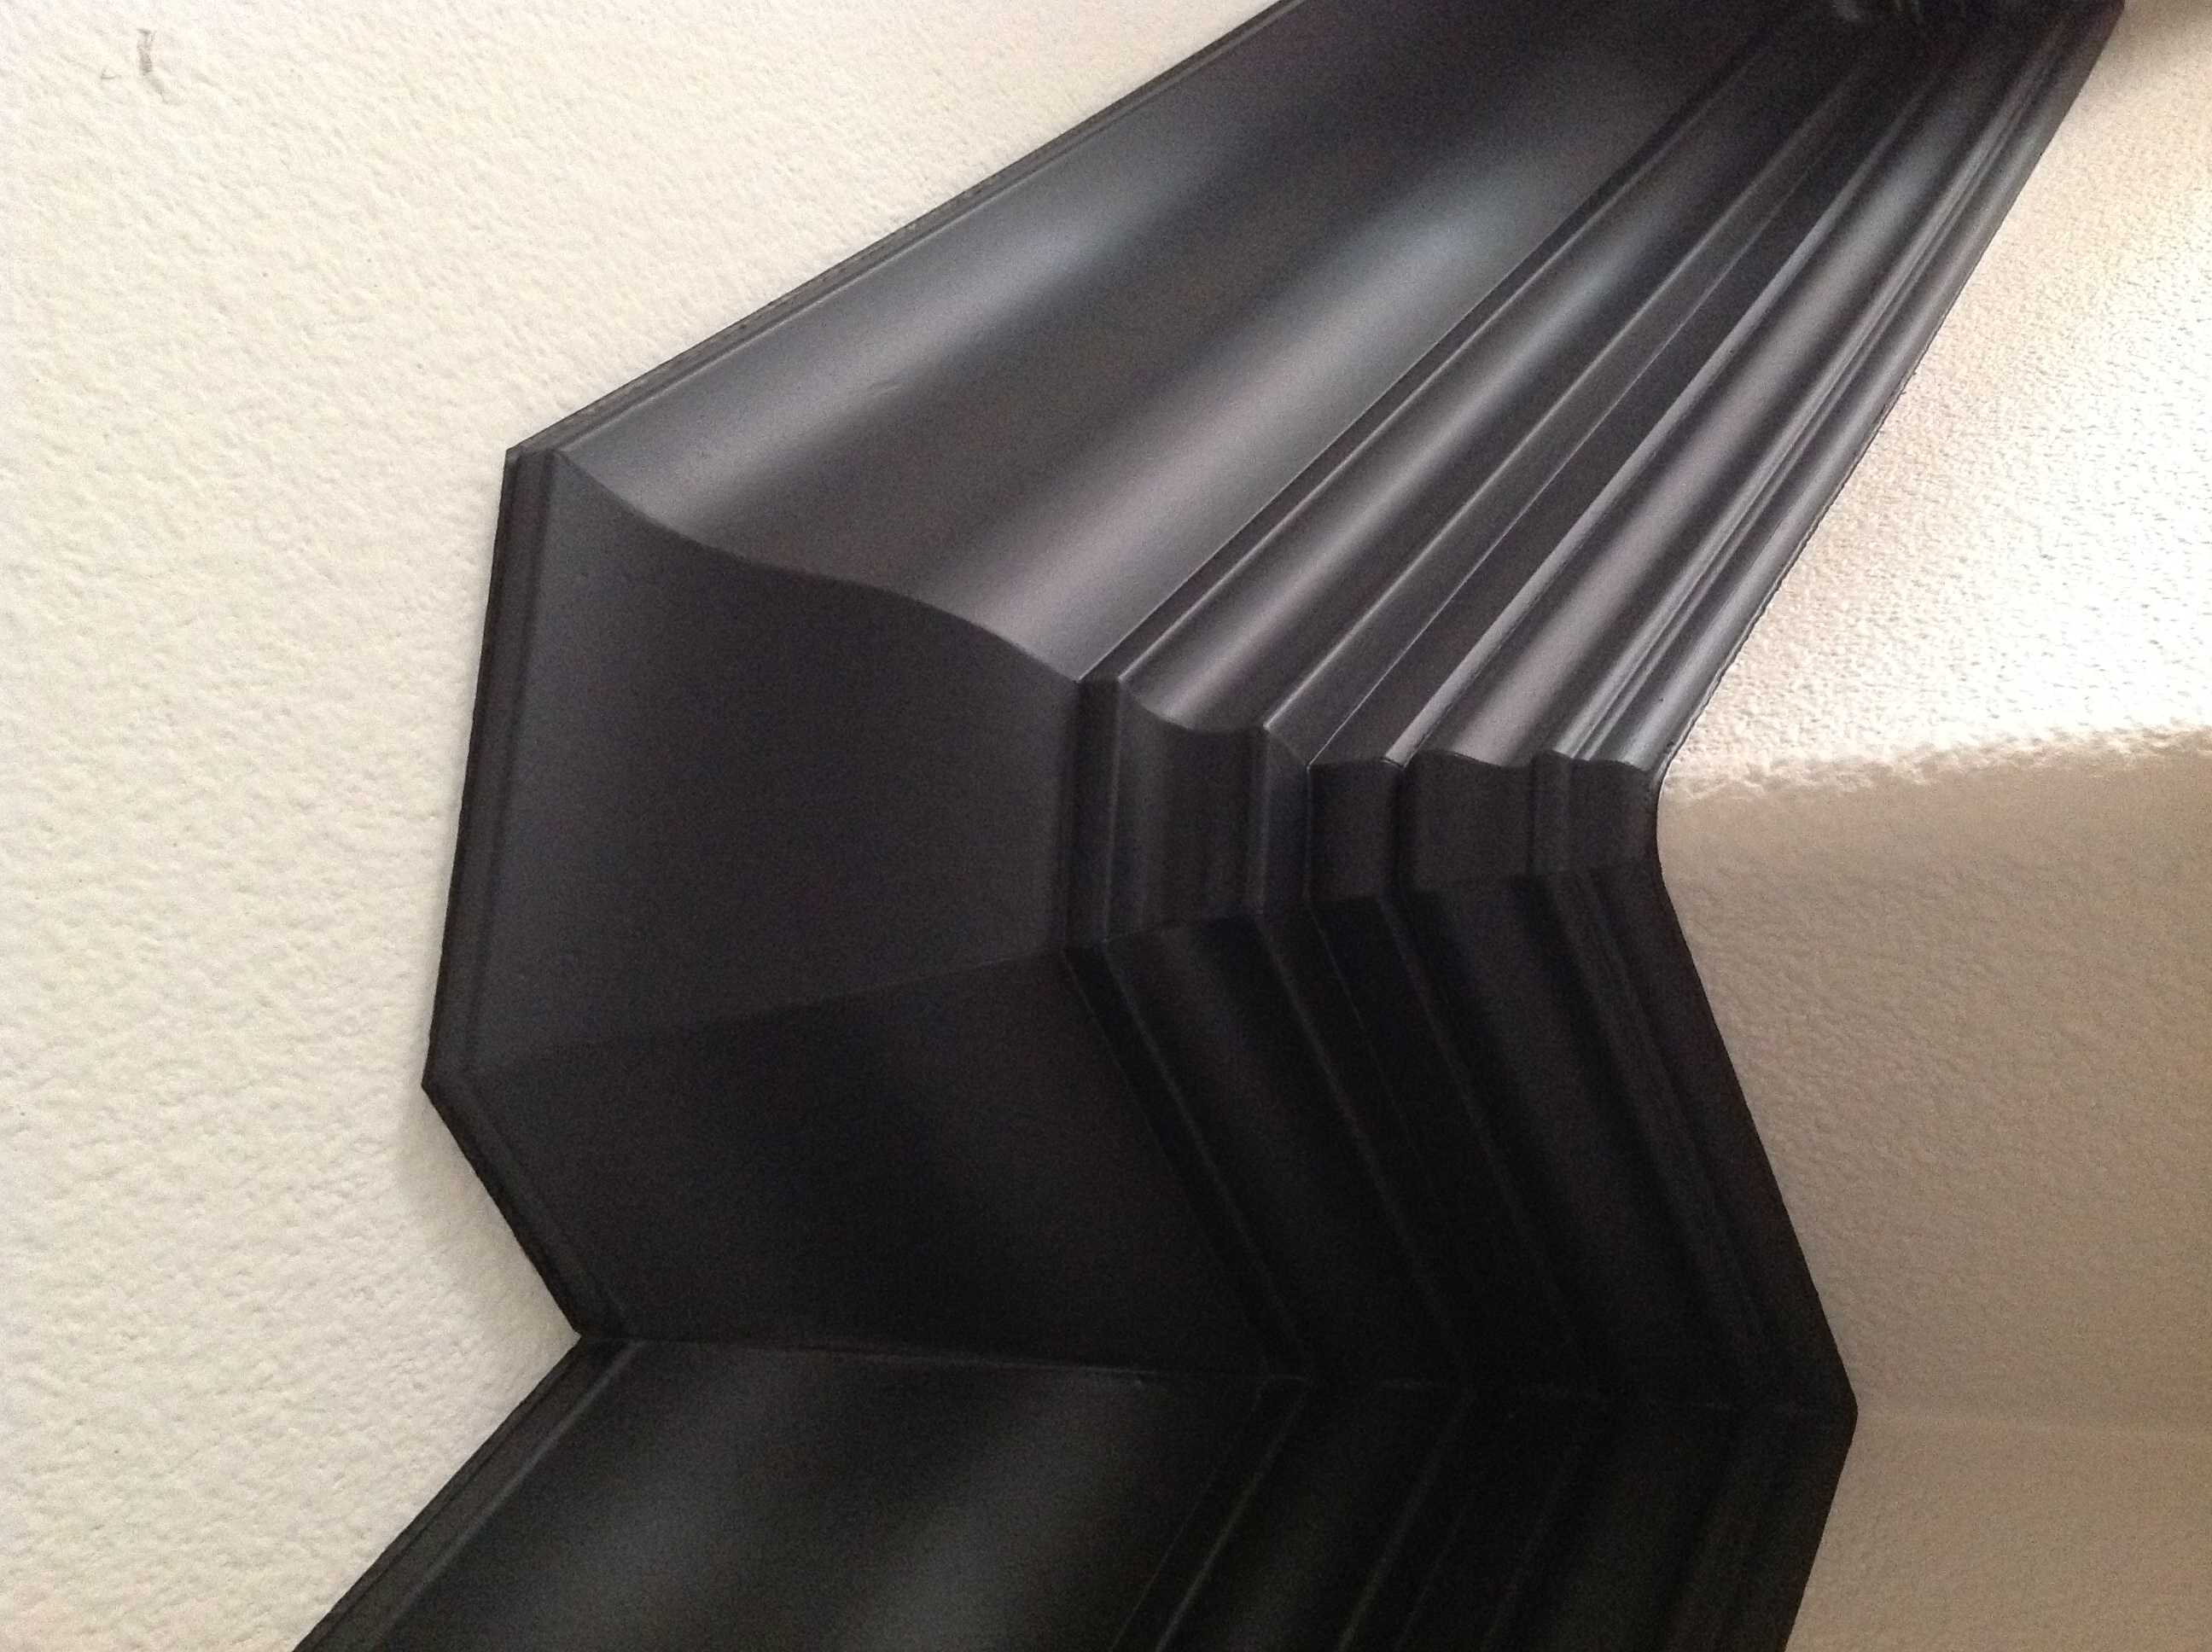 Crown moulding Murrieta